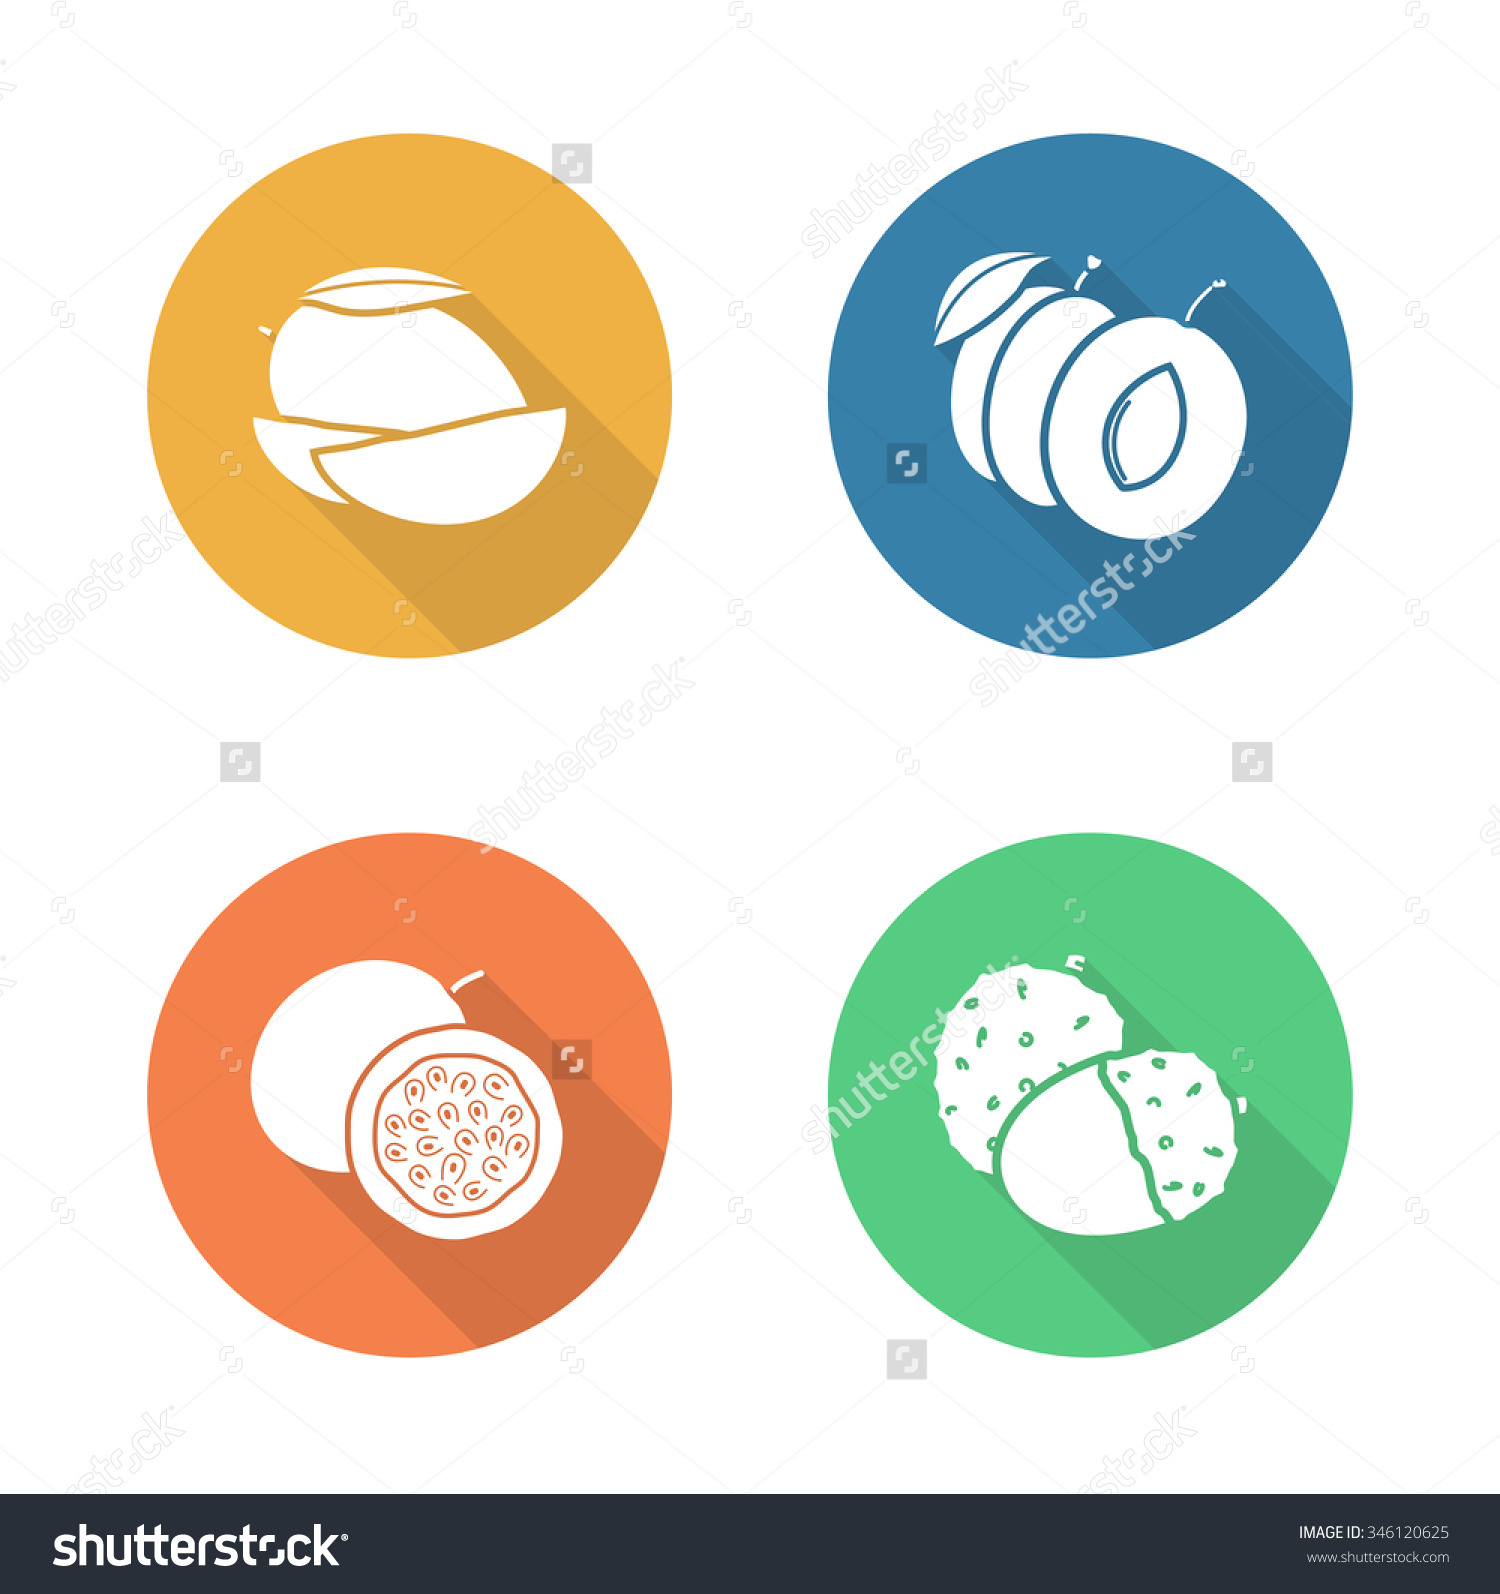 Fruits Flat Design Icons Set Sliced Stock Illustration 346120625.